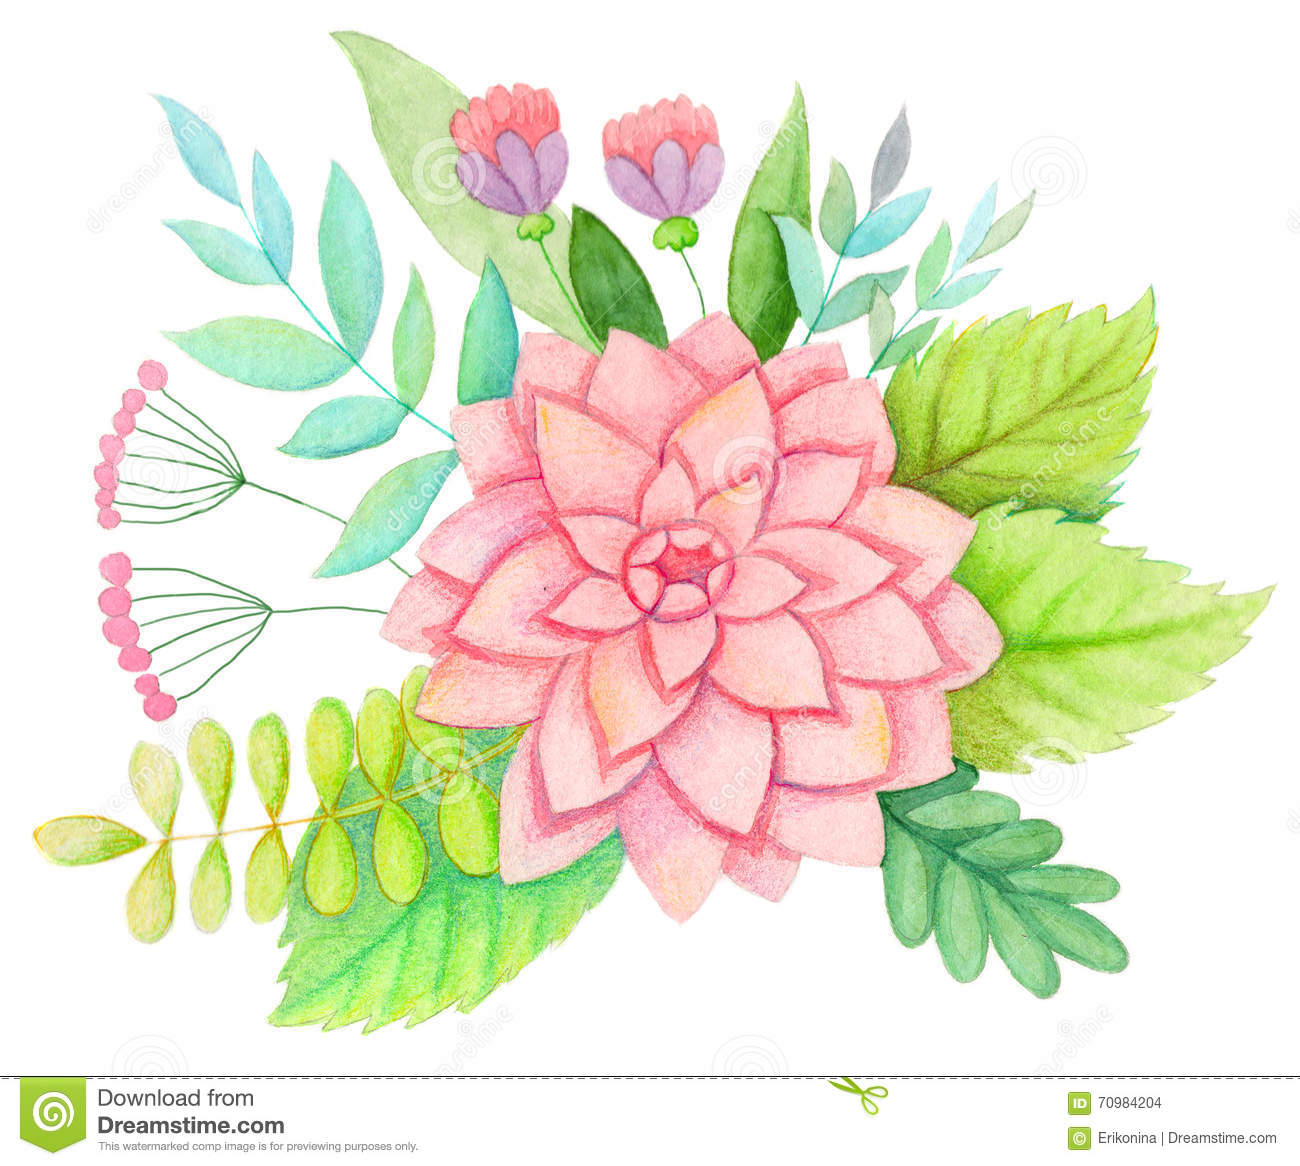 Download watercolor flowers stock illustration illustration of logo 70984204